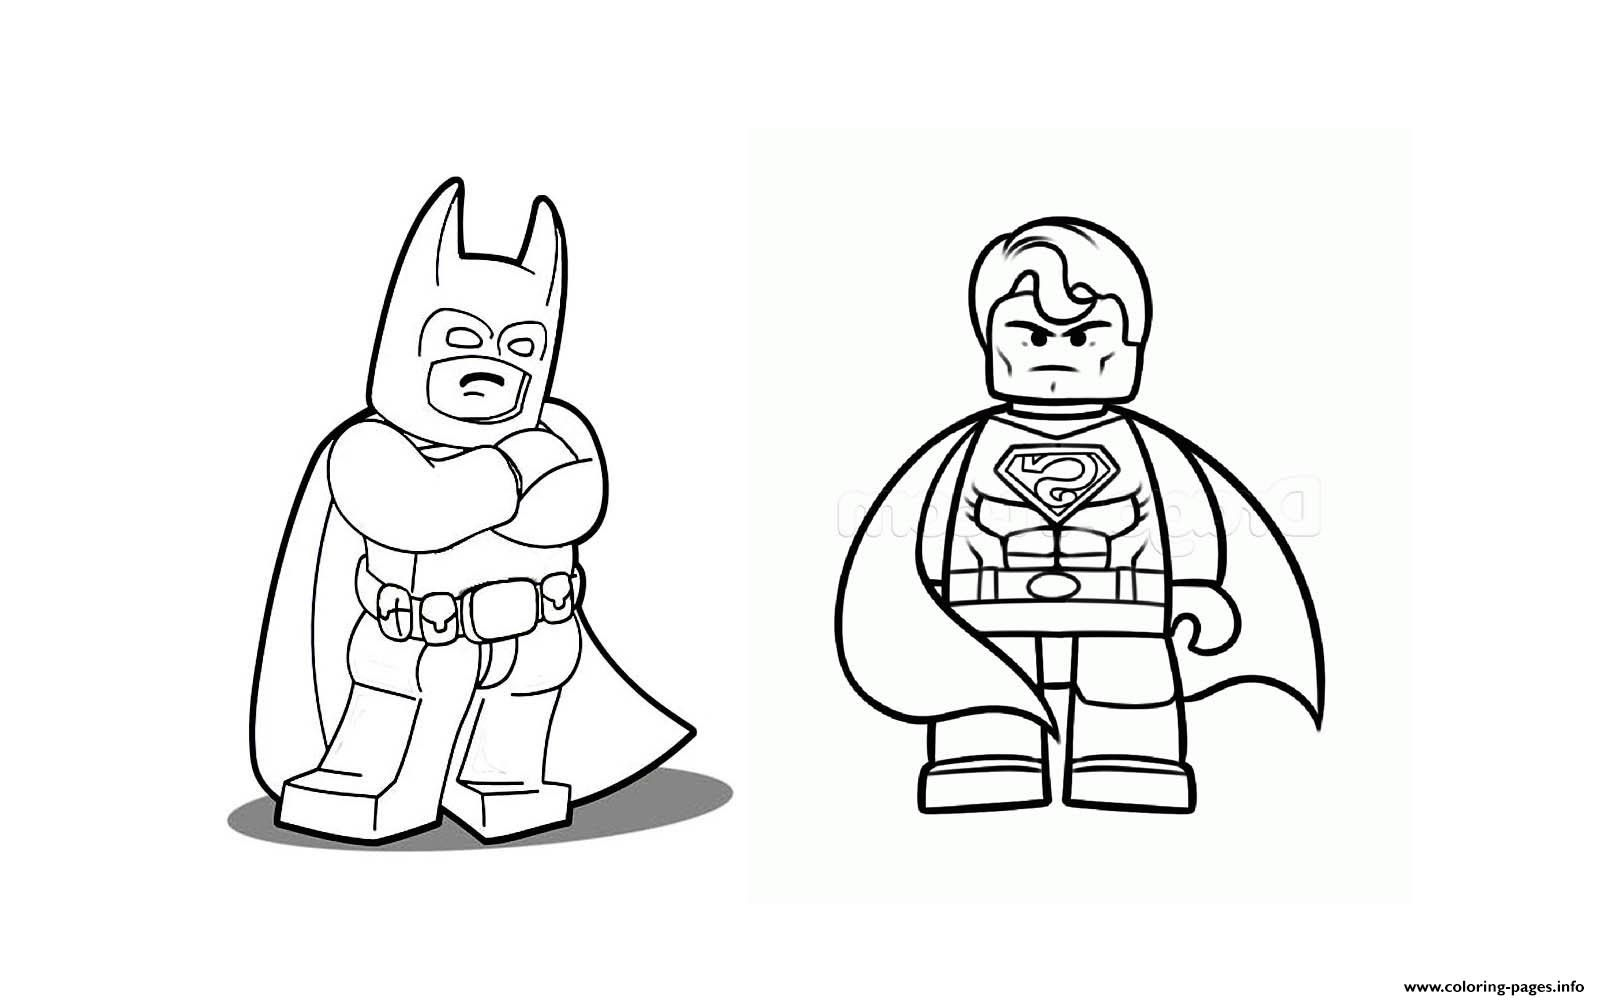 lego justice league coloring pages lego justice league coloring pages coloring home pages justice coloring league lego